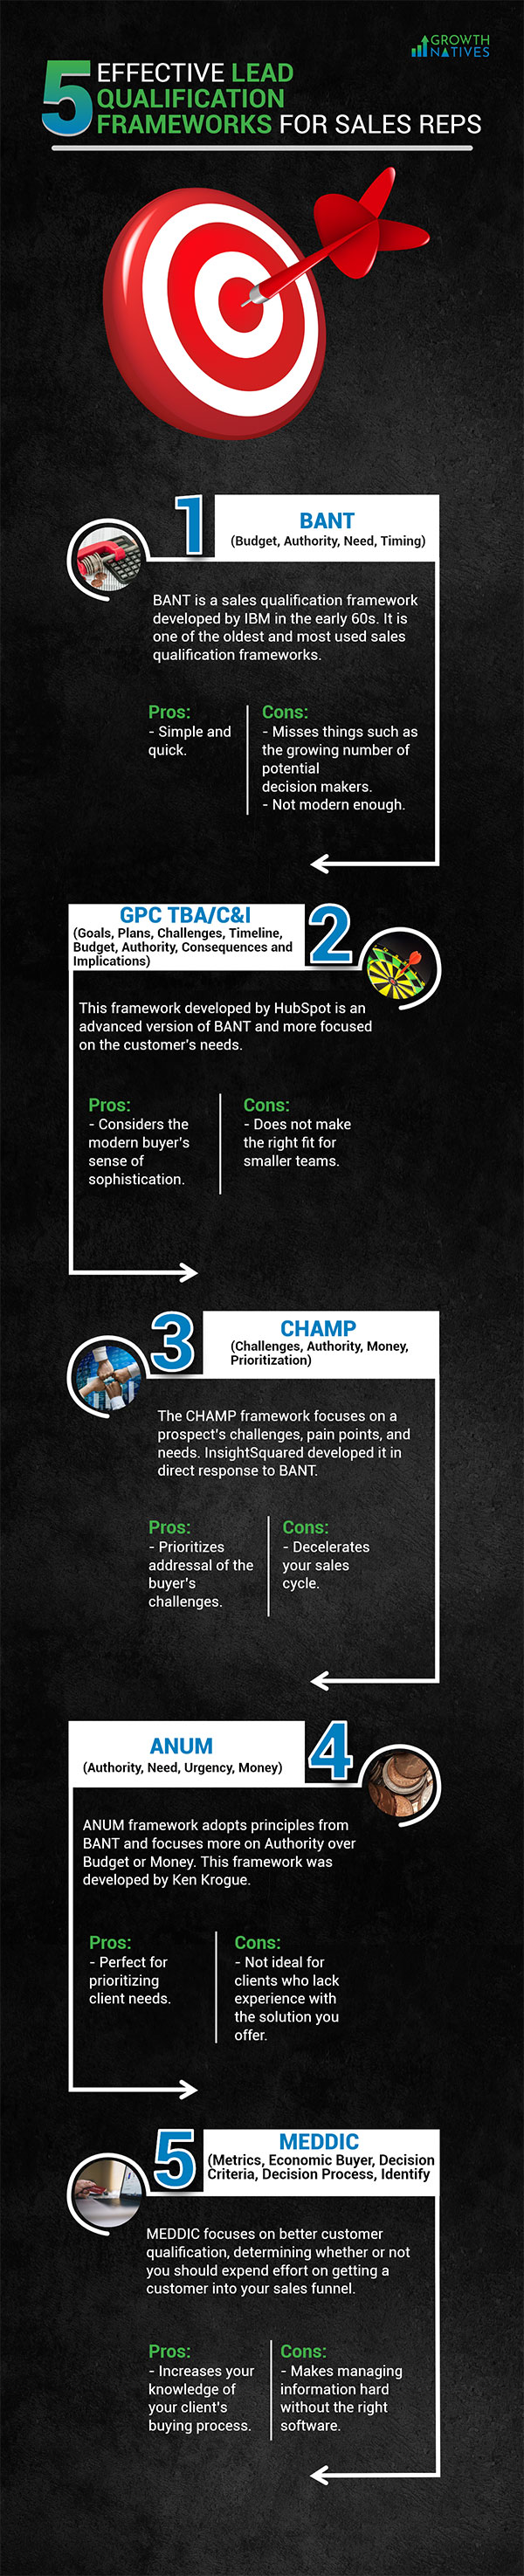 Infographic - Top 5 Effective Lead Qualification Frameworks